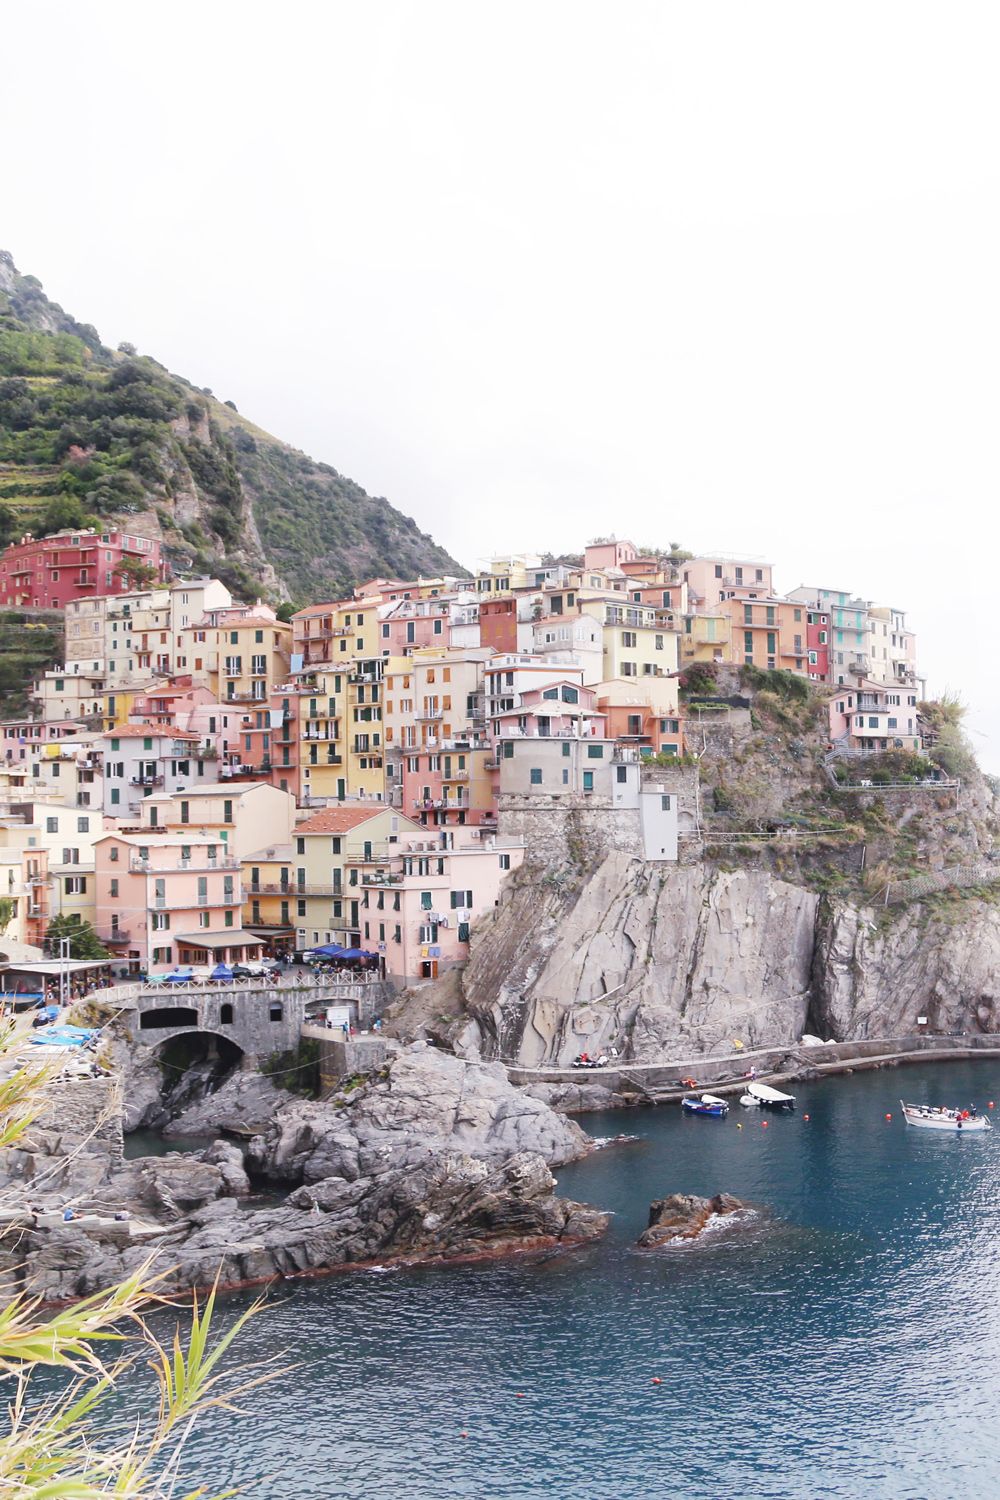 To Vogue or Bust shares the top tips for visiting Italy